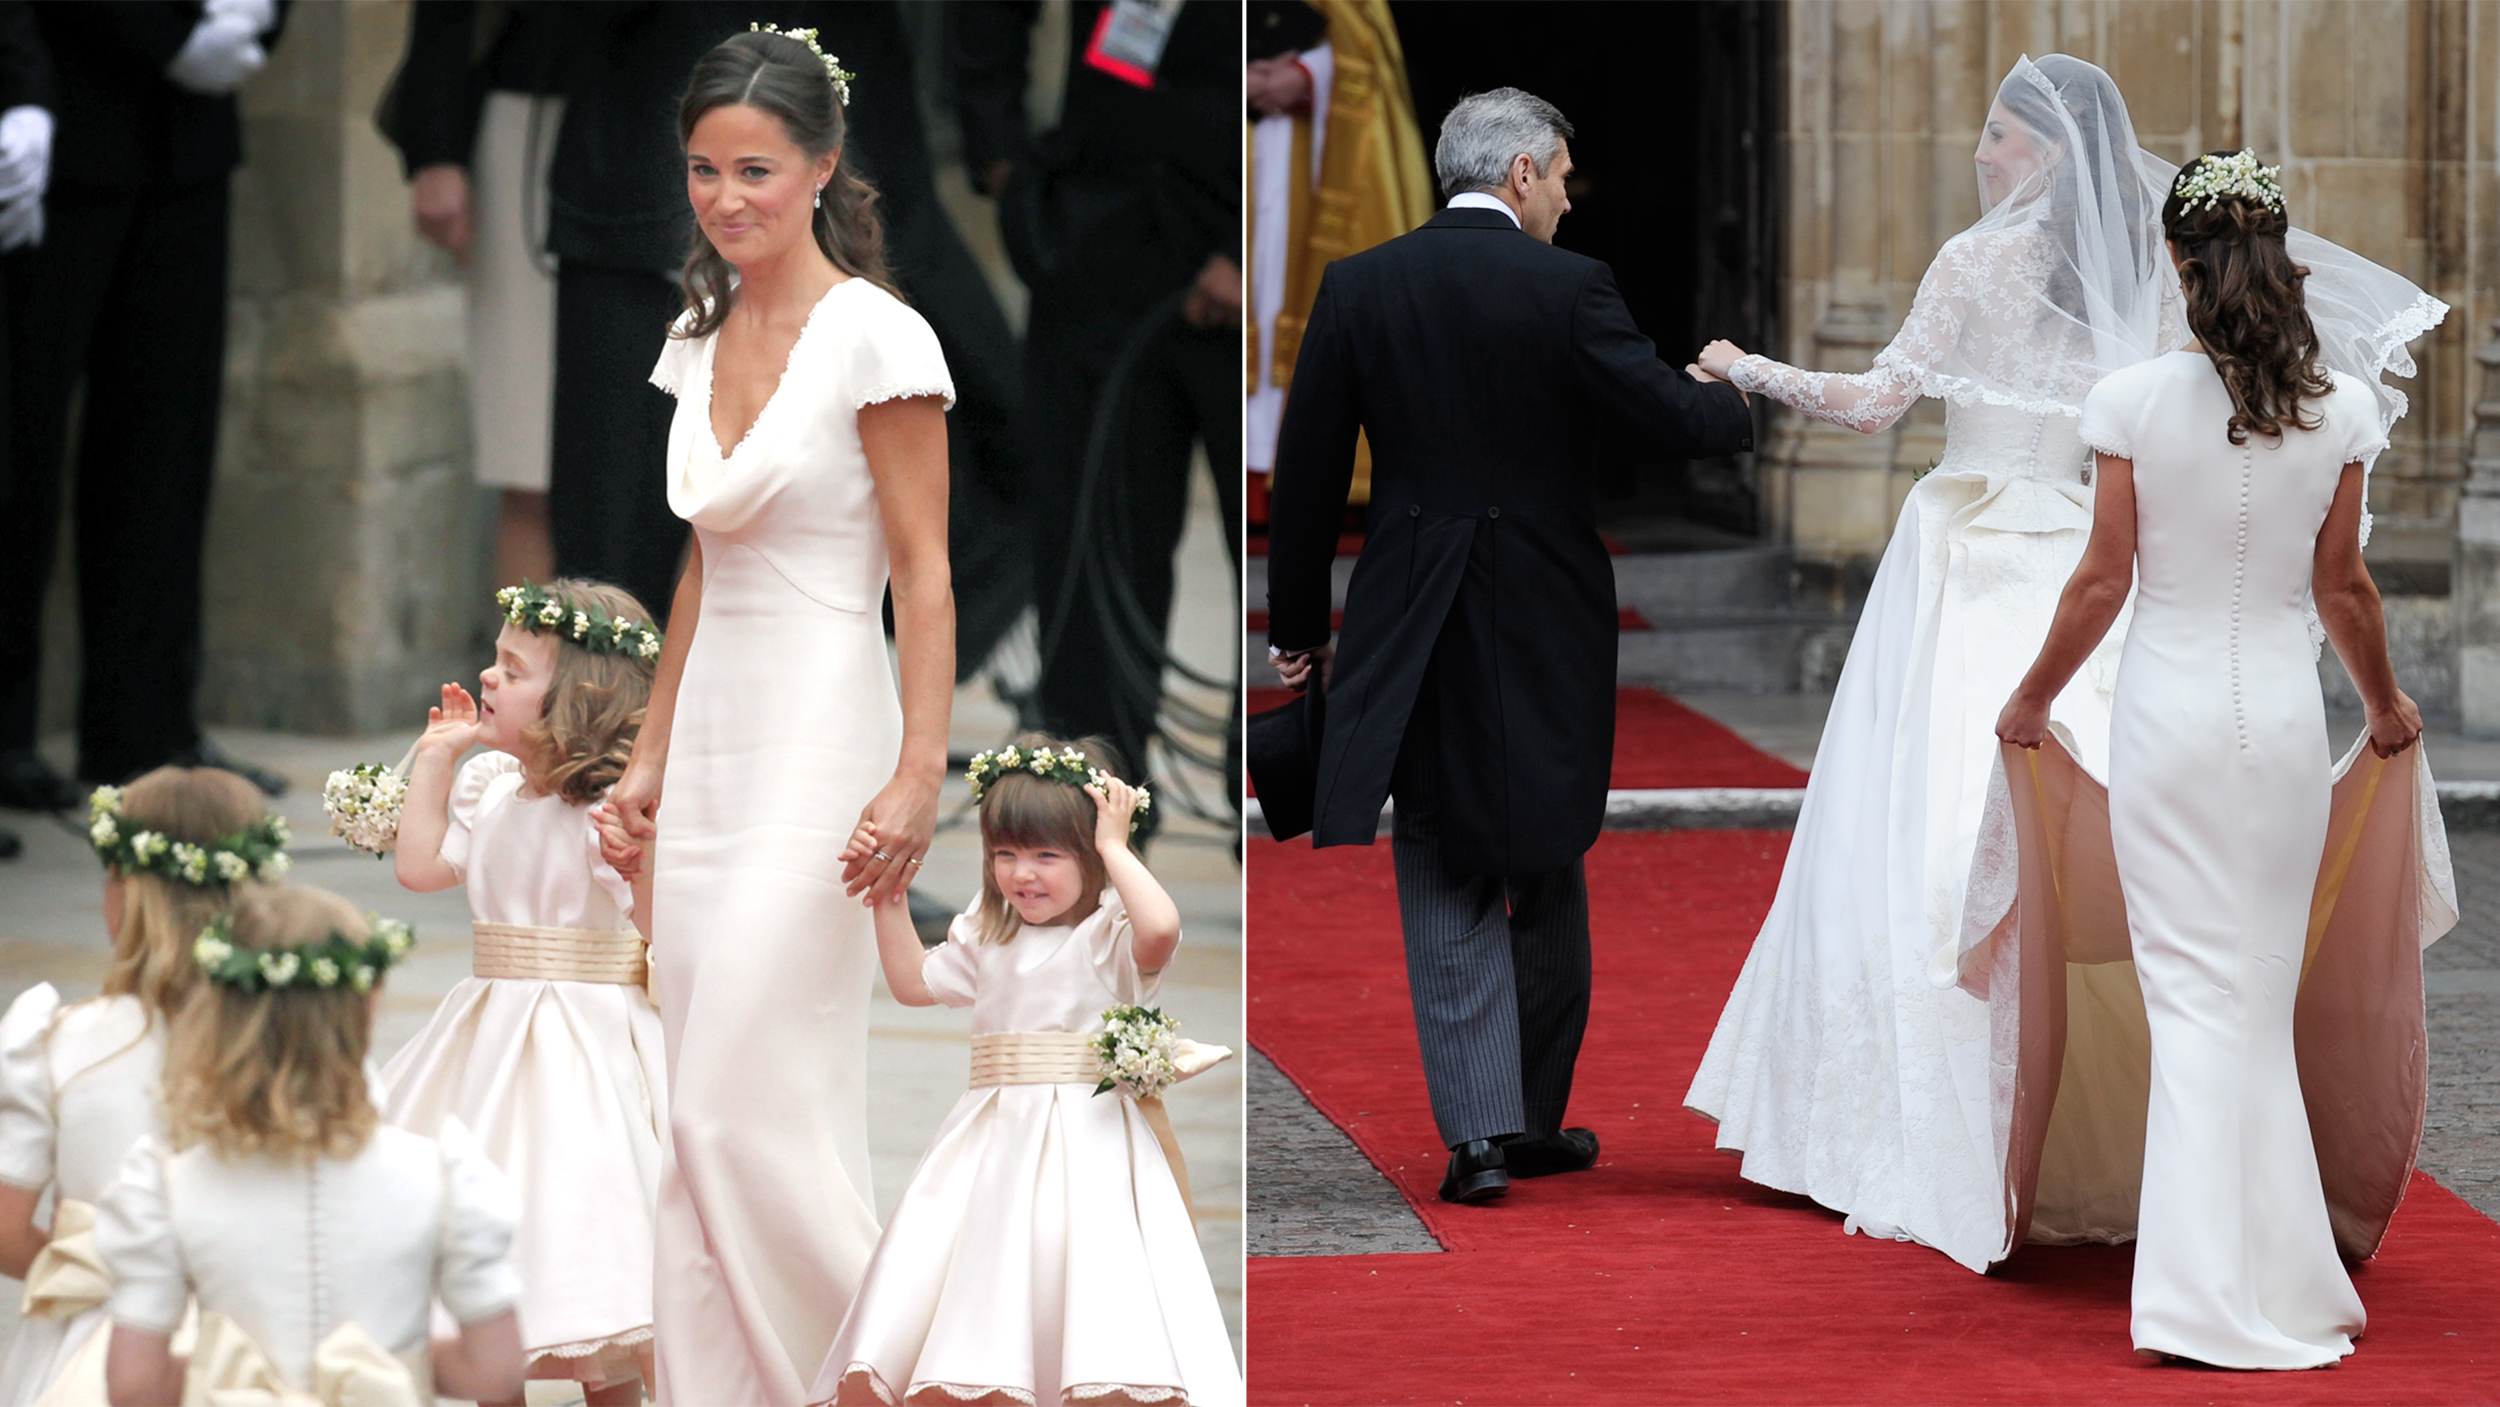 Pippa Middleton: Royal Wedding Dress 'fitted A Little Too